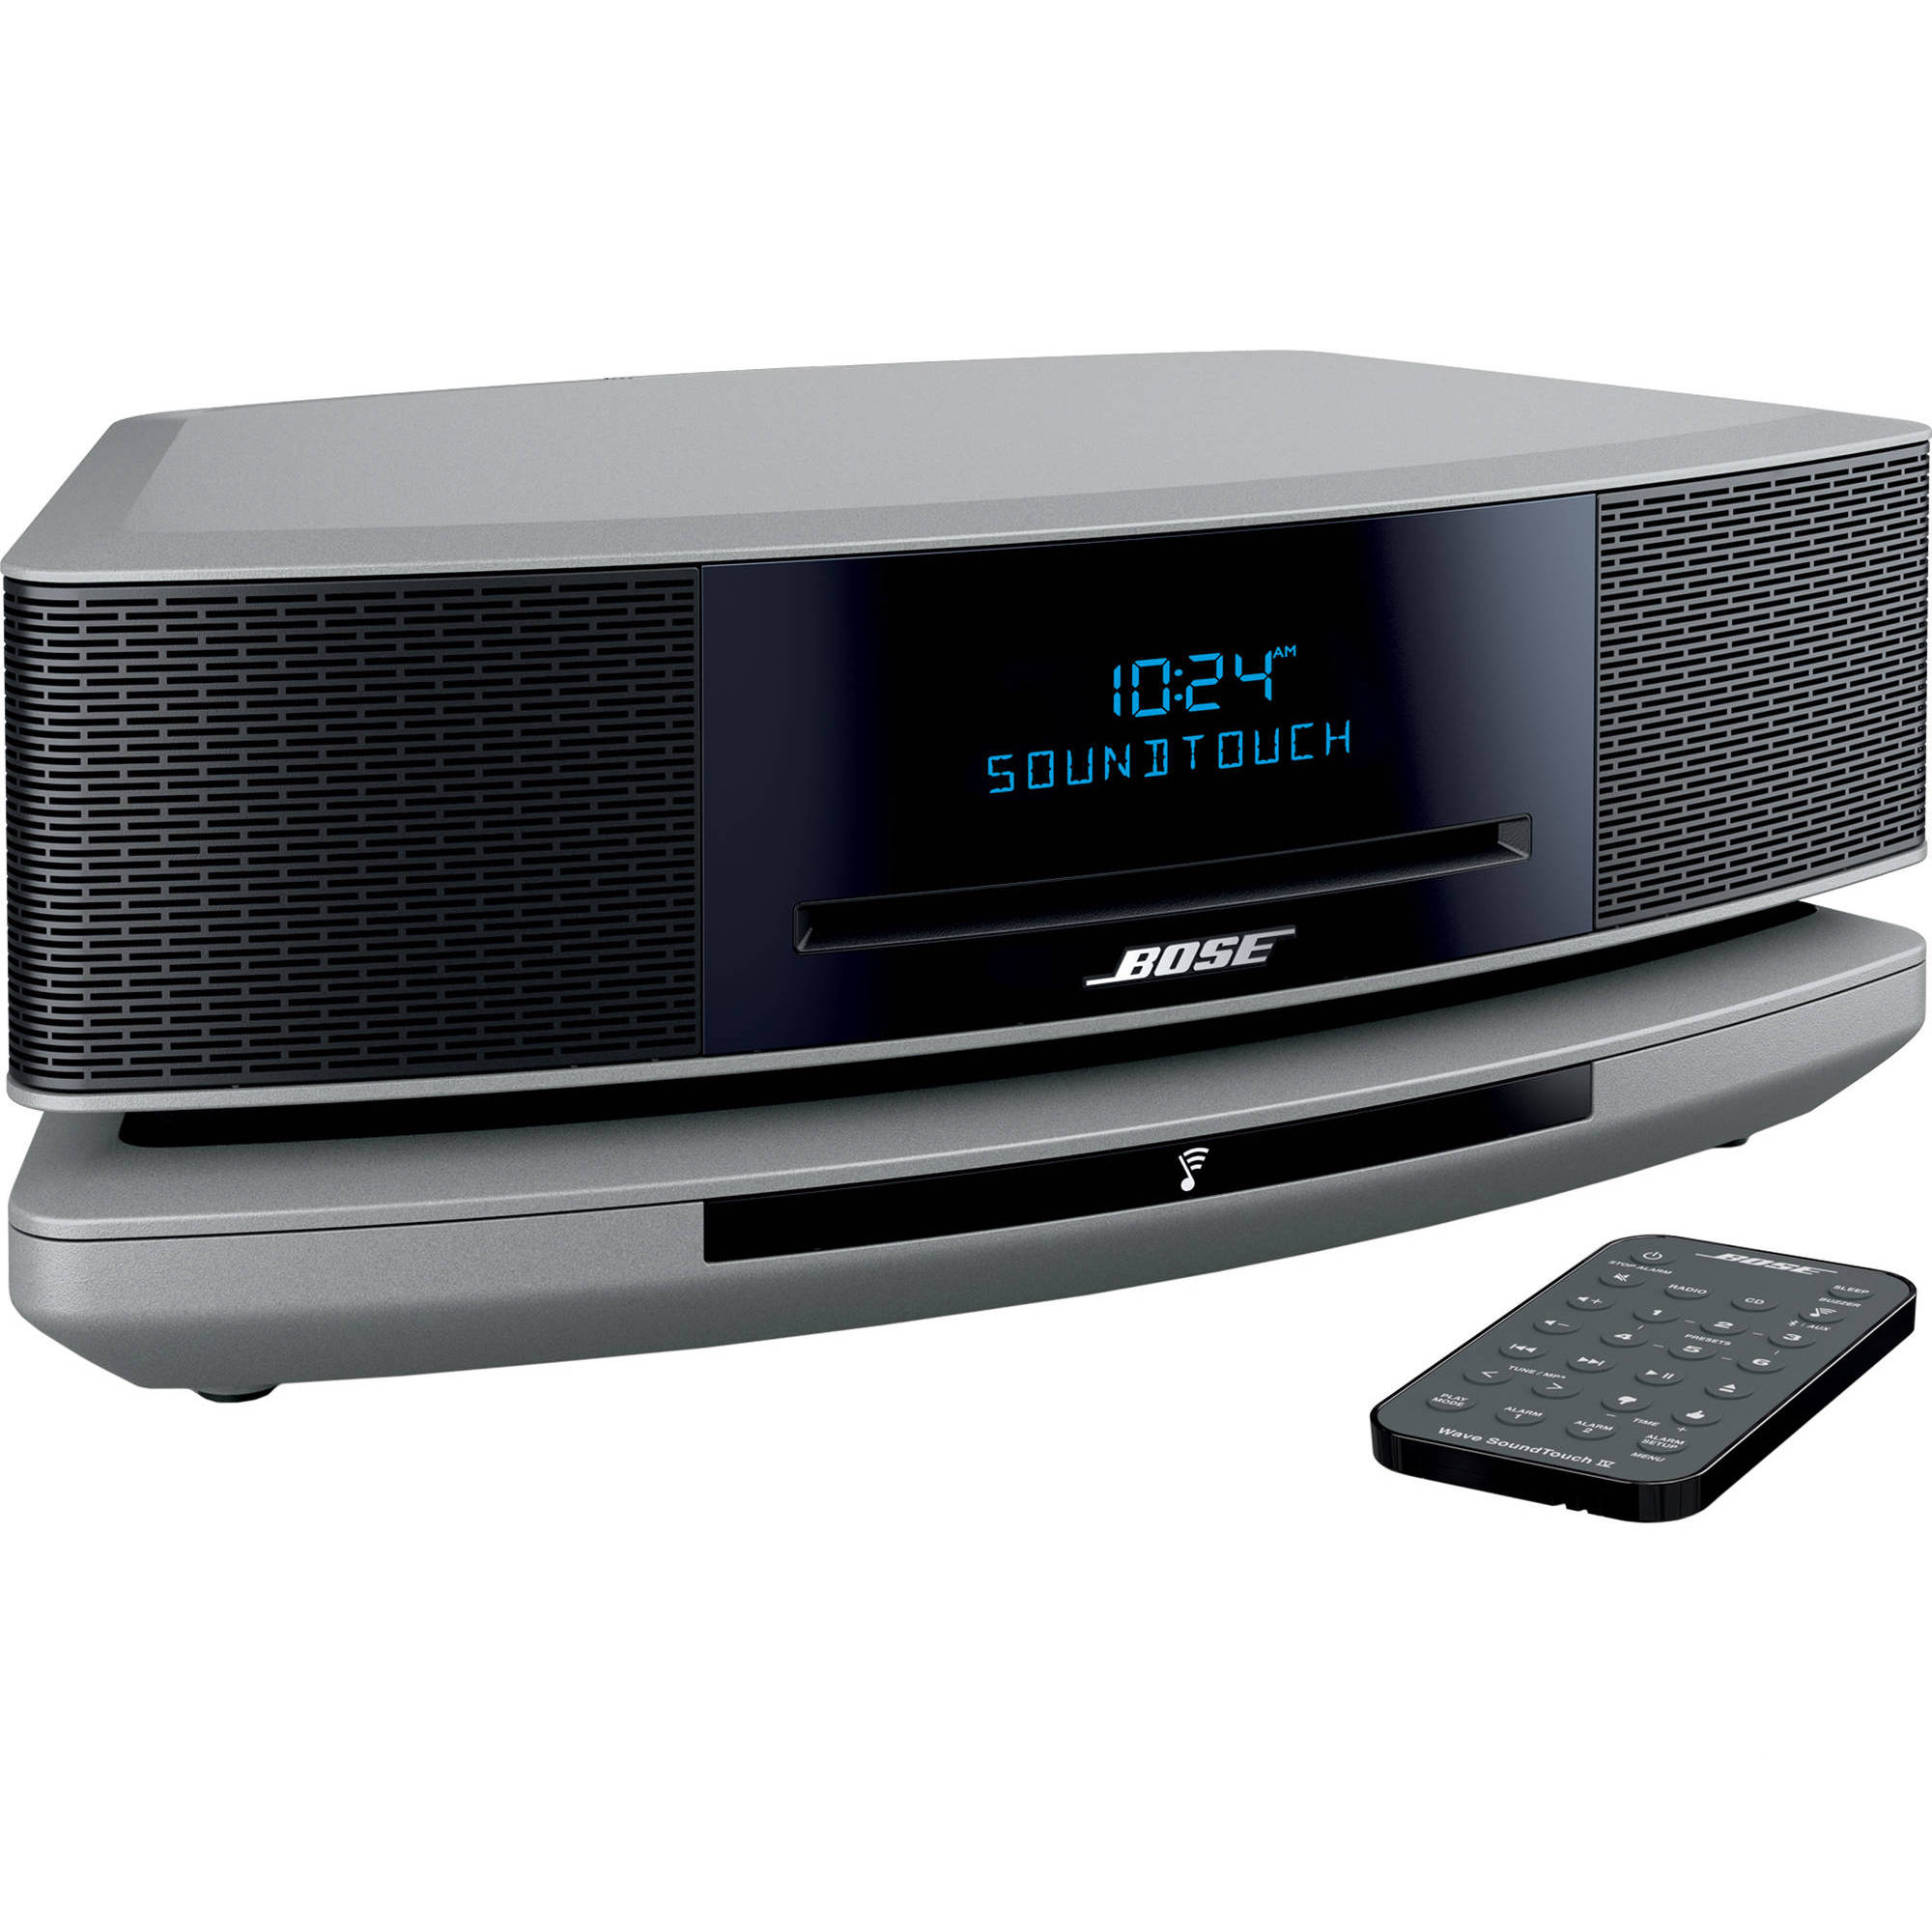 bose wave soundtouch music system iv platinum silver. Black Bedroom Furniture Sets. Home Design Ideas